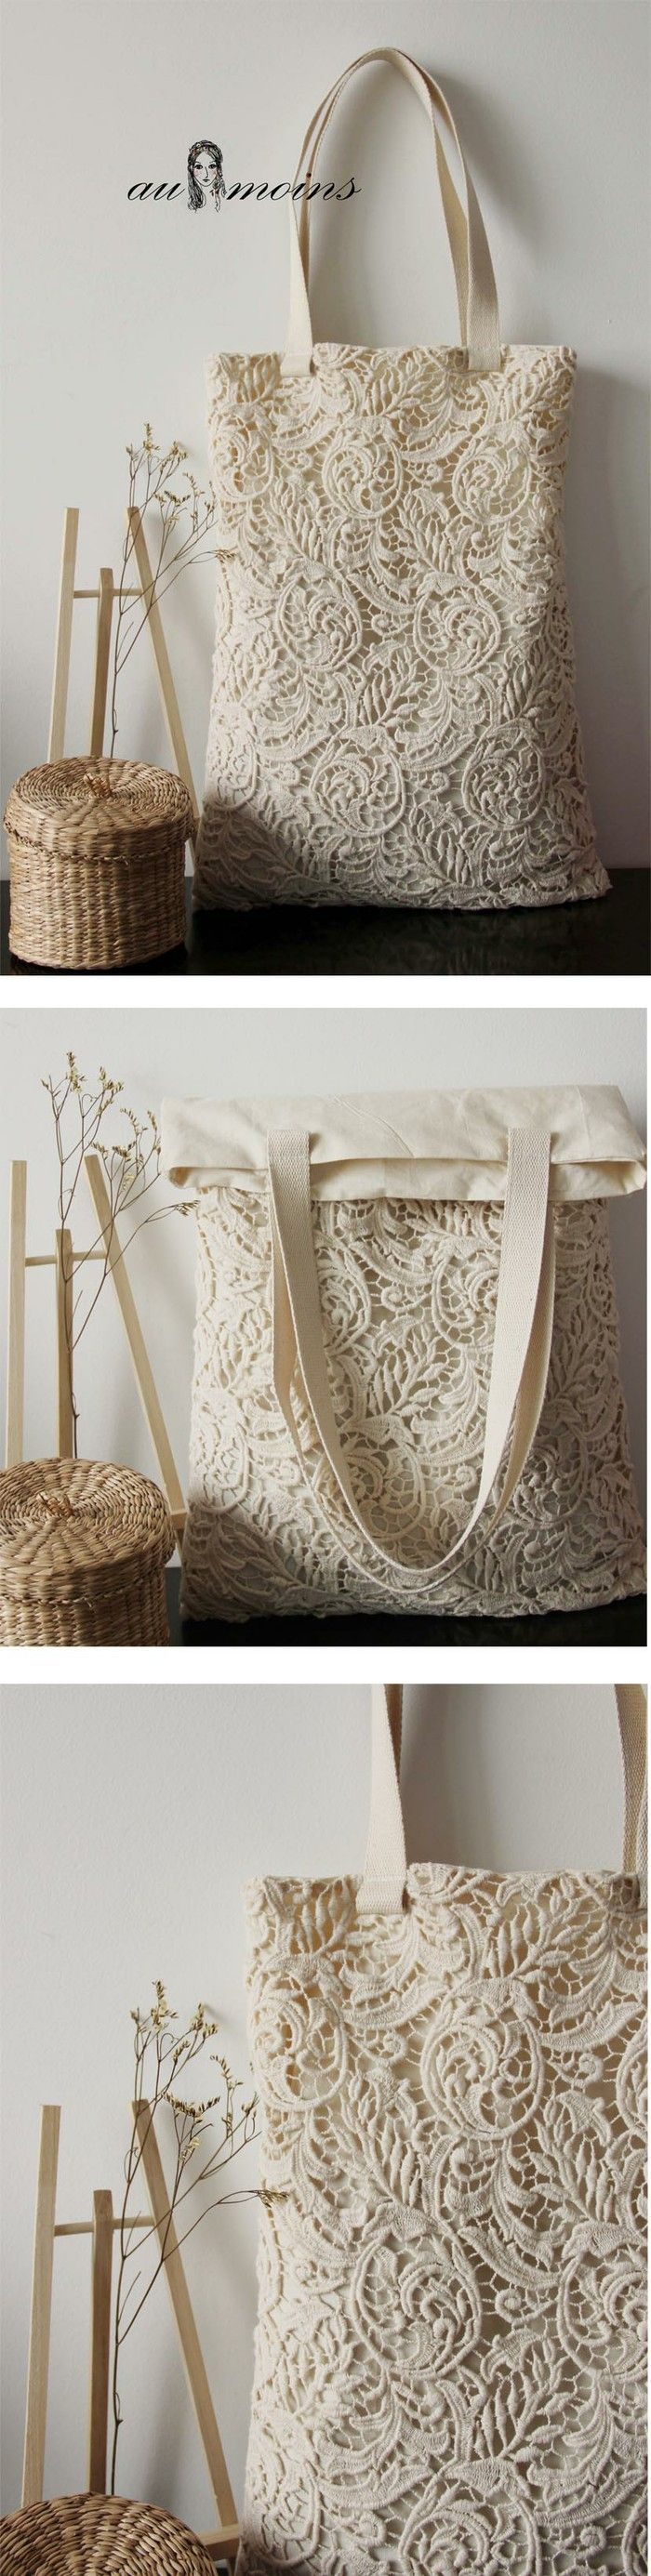 beautiful cotton lace bag